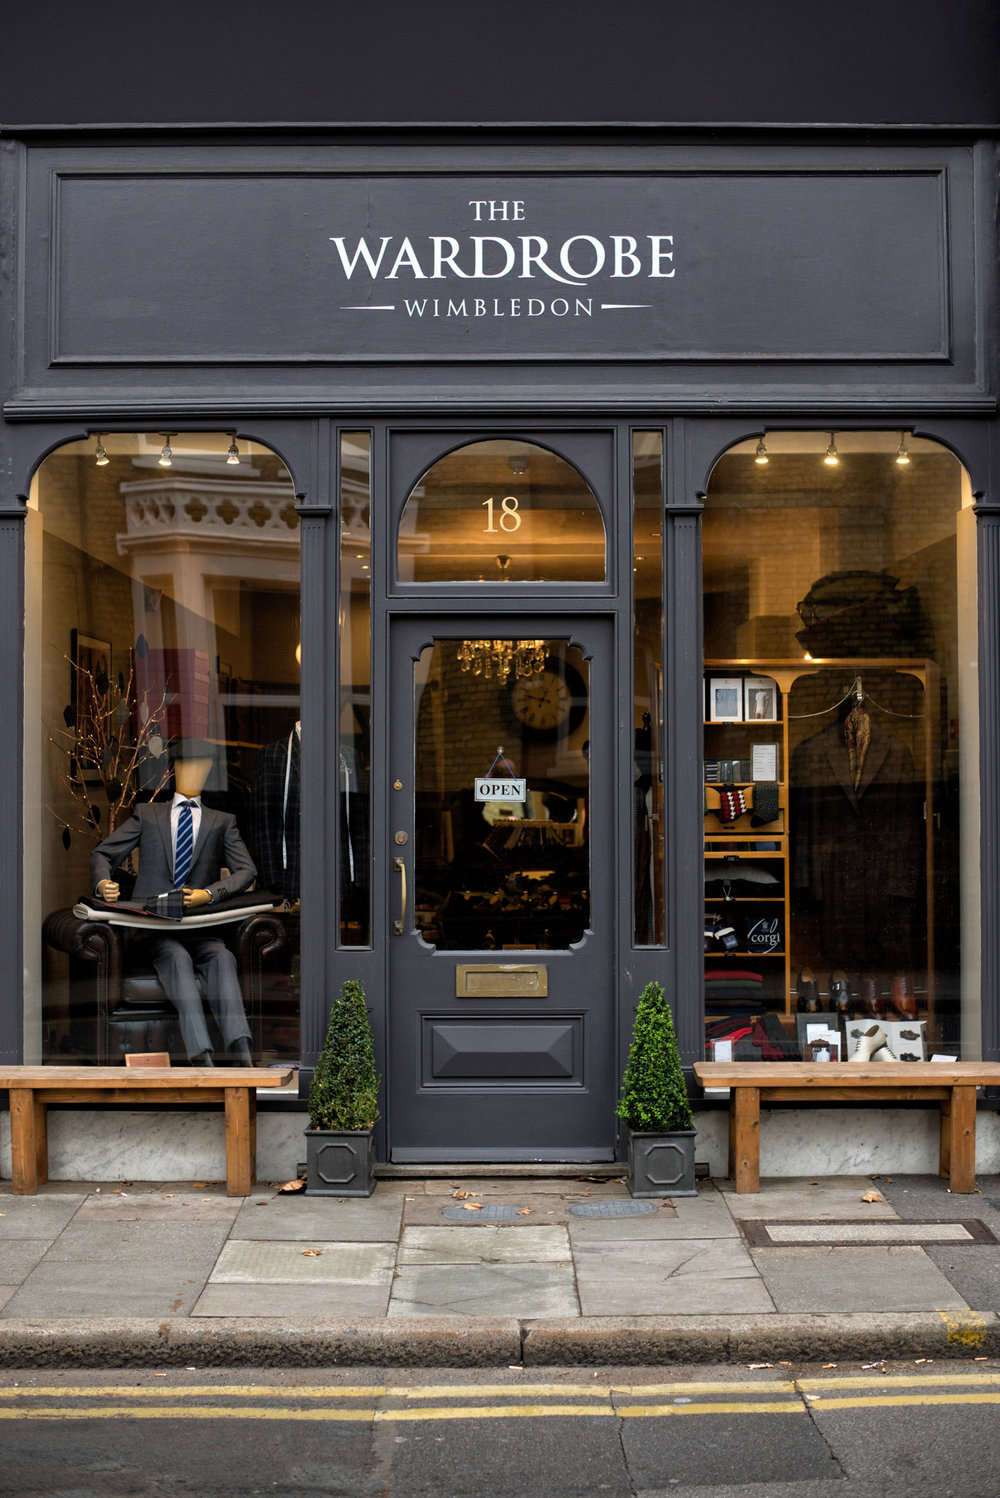 £100 gift voucher from The  Wardrobe Wimbledon , the high-end gentleman's bespoke suits and clothing retail outlet on Ridgway in the Village, and one of the few independent men' clothing shops in London. Old-world service and luxurious vibe